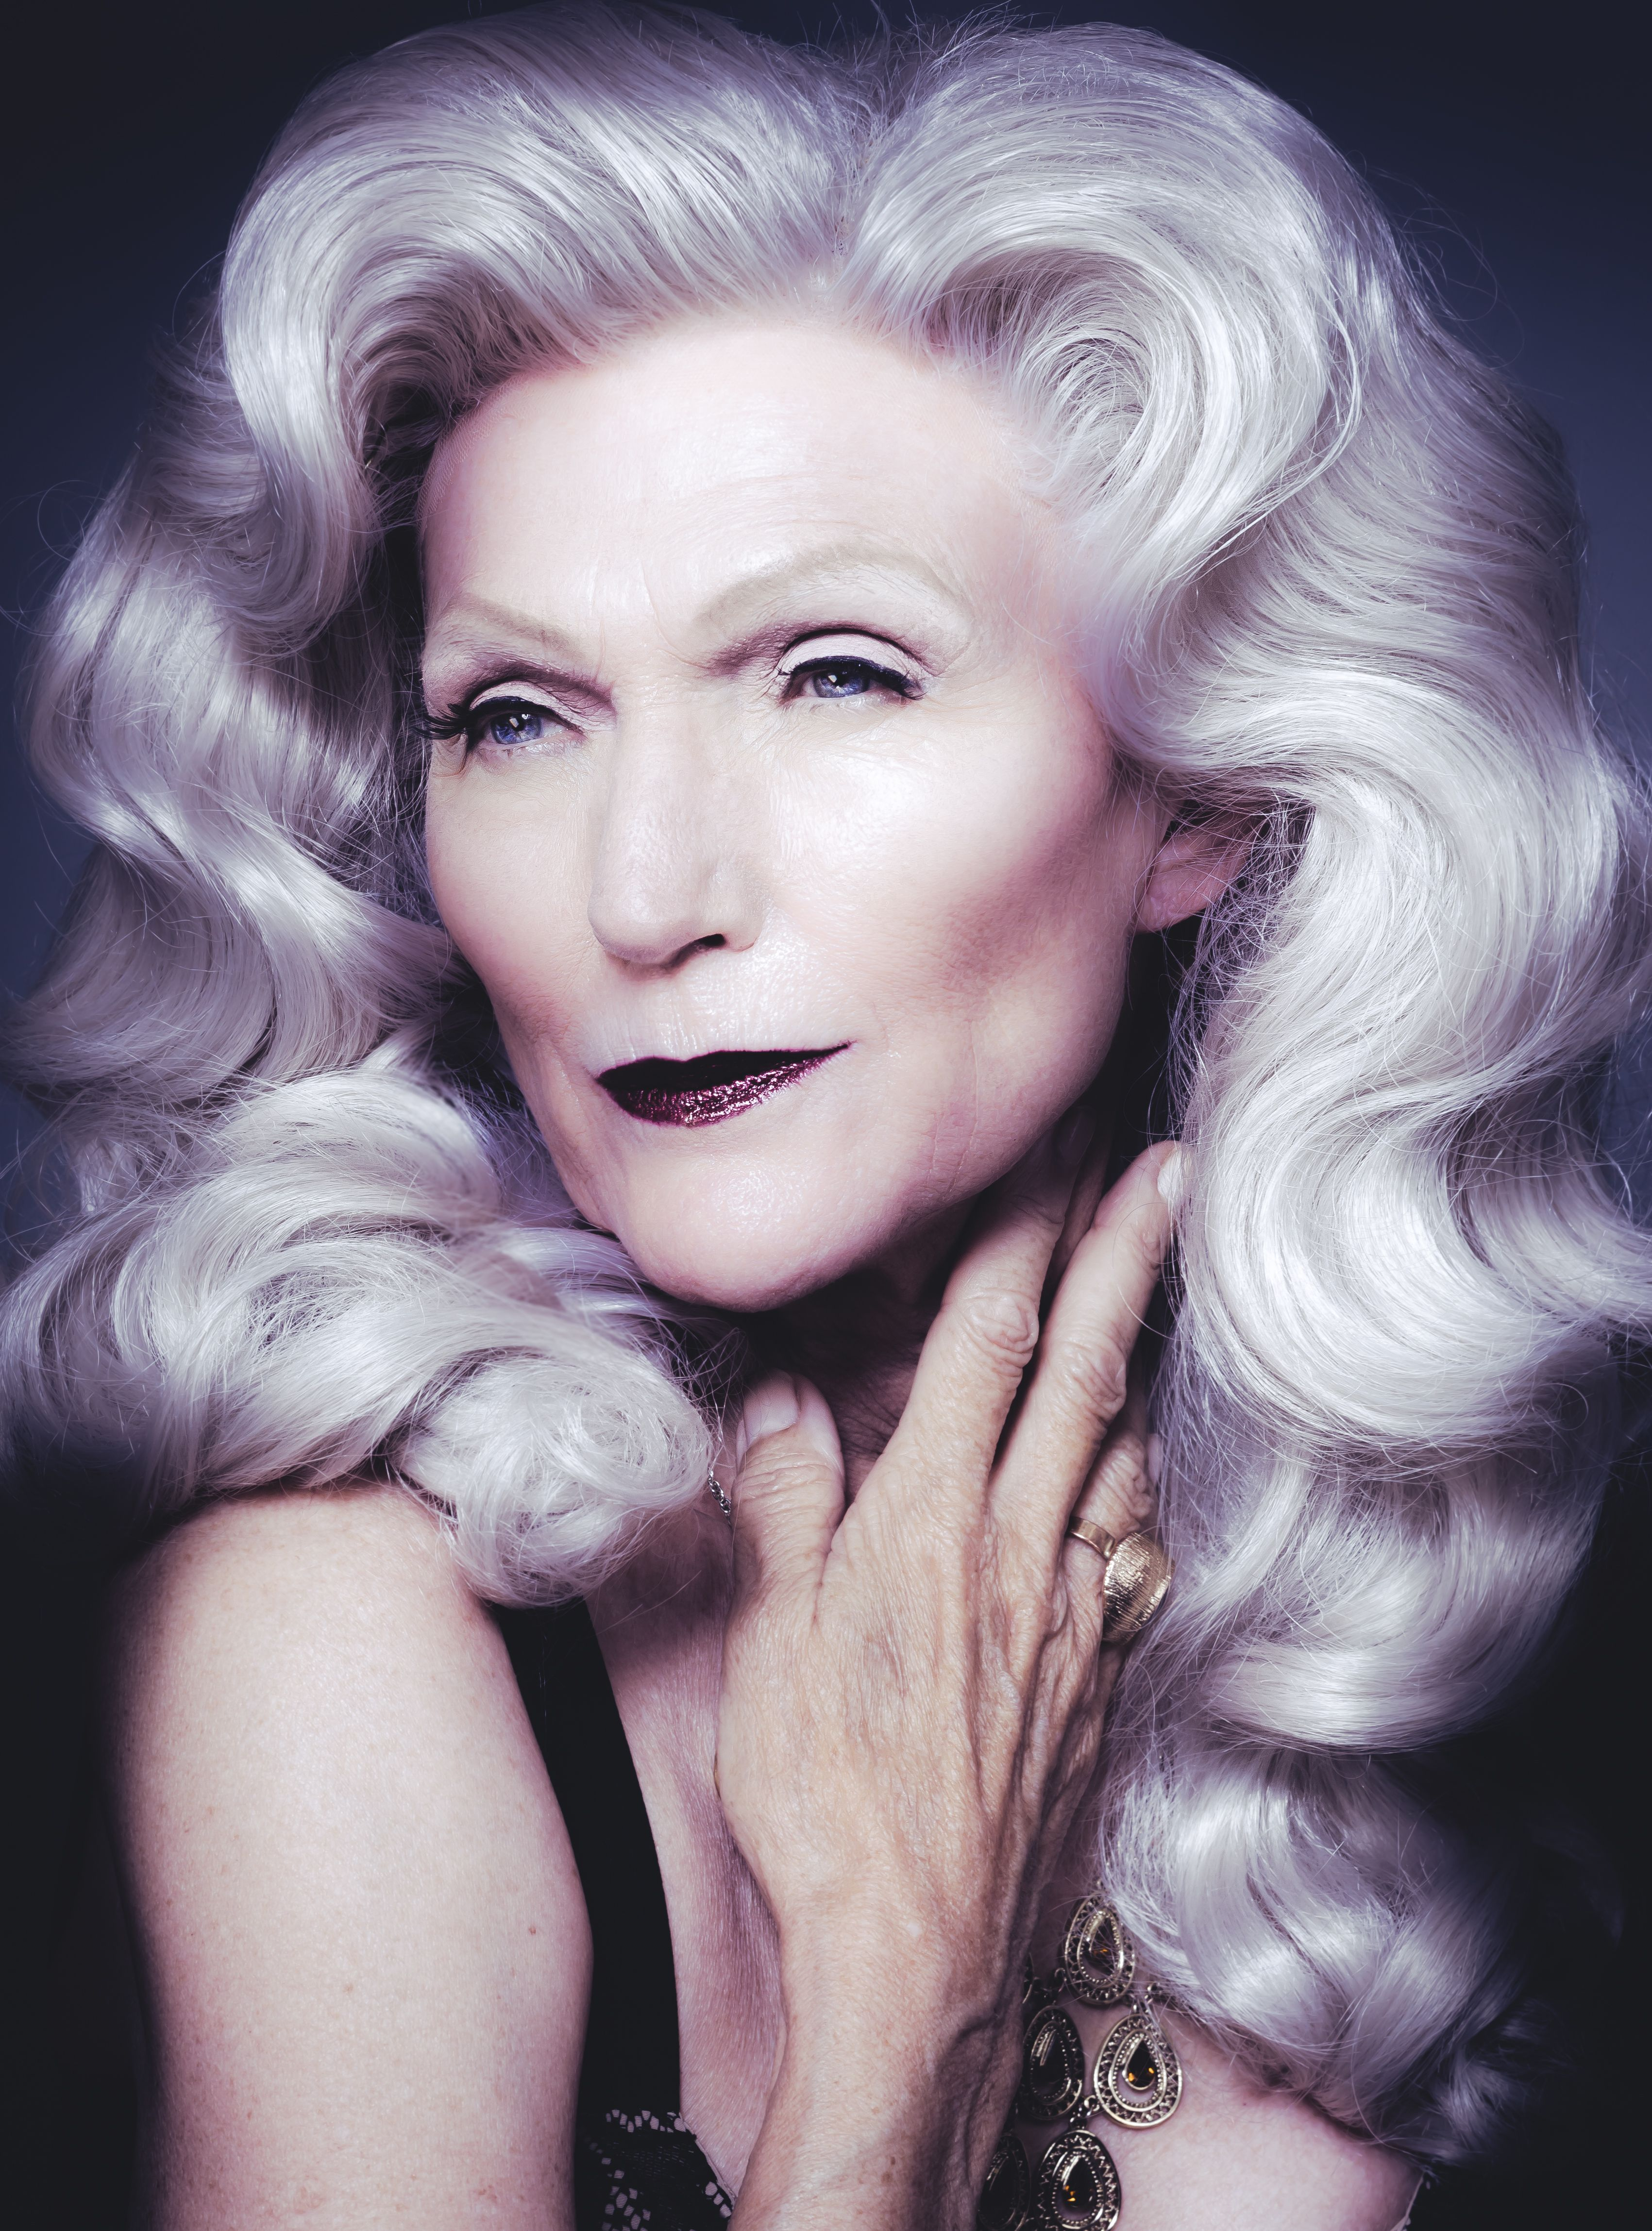 30 best images about Maye Musk on Pinterest | Models, The